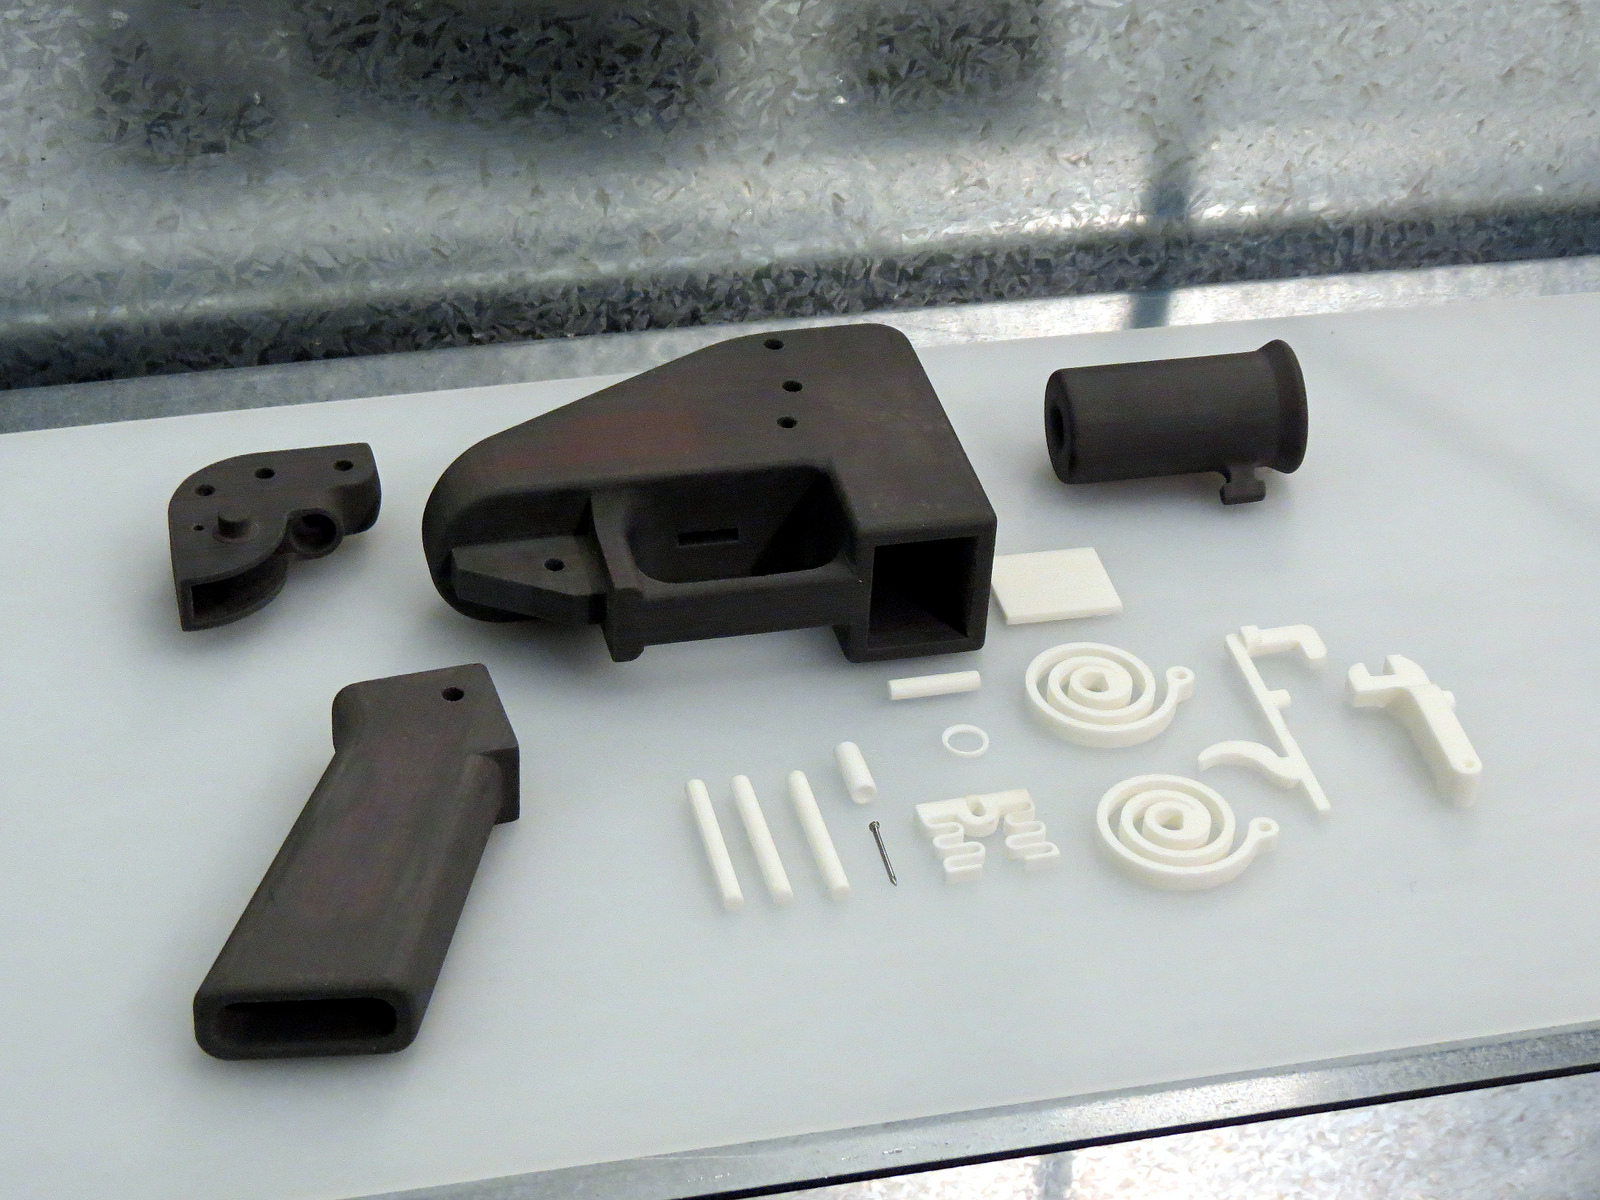 3D-printed guns and semi-automatic firearms